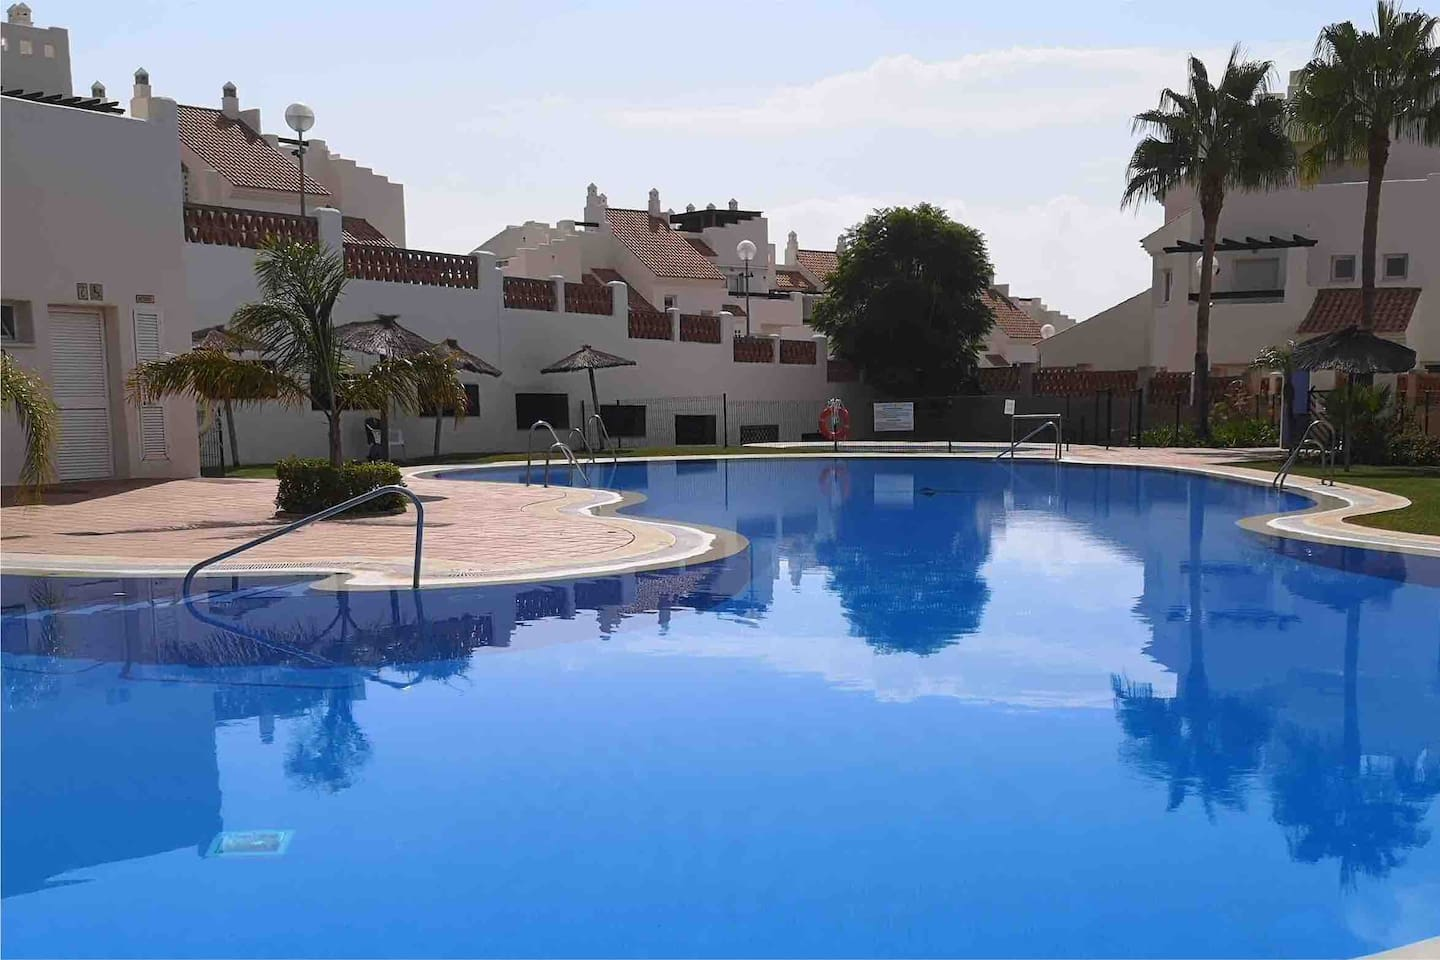 2 private pools with beautiful gardens.